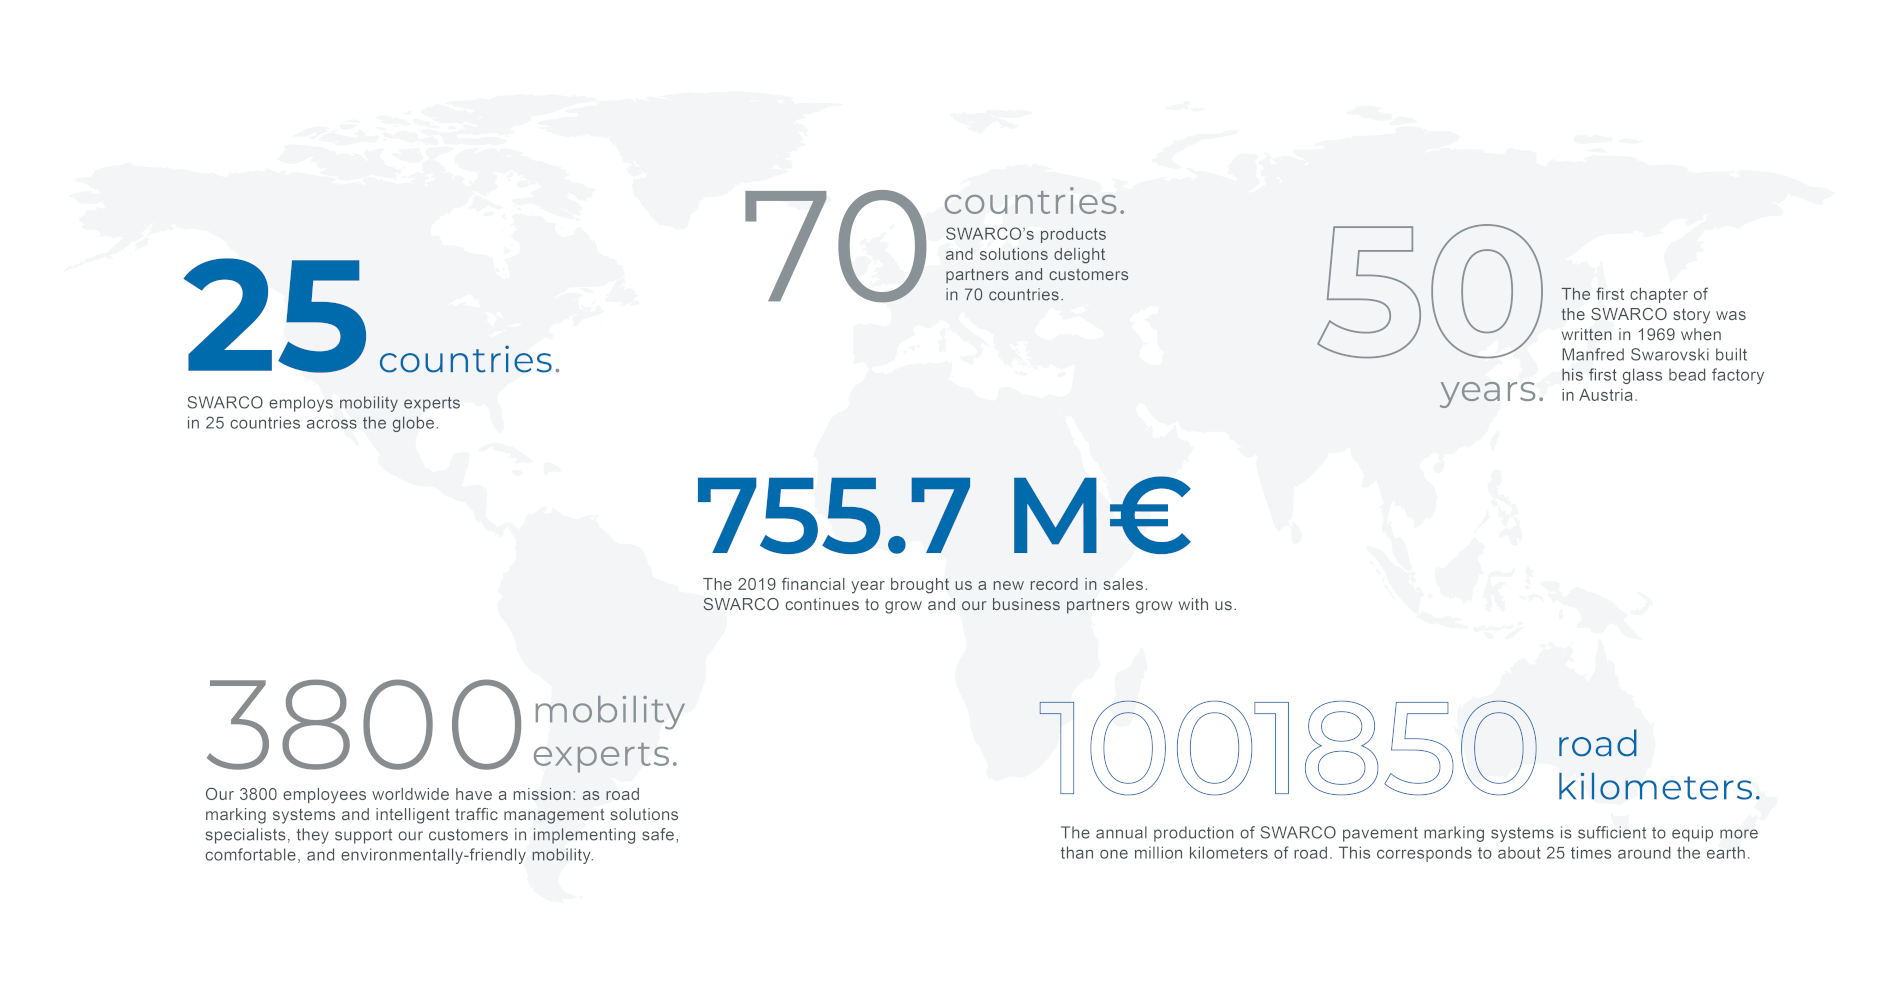 Illustration: SWARCO in numbers